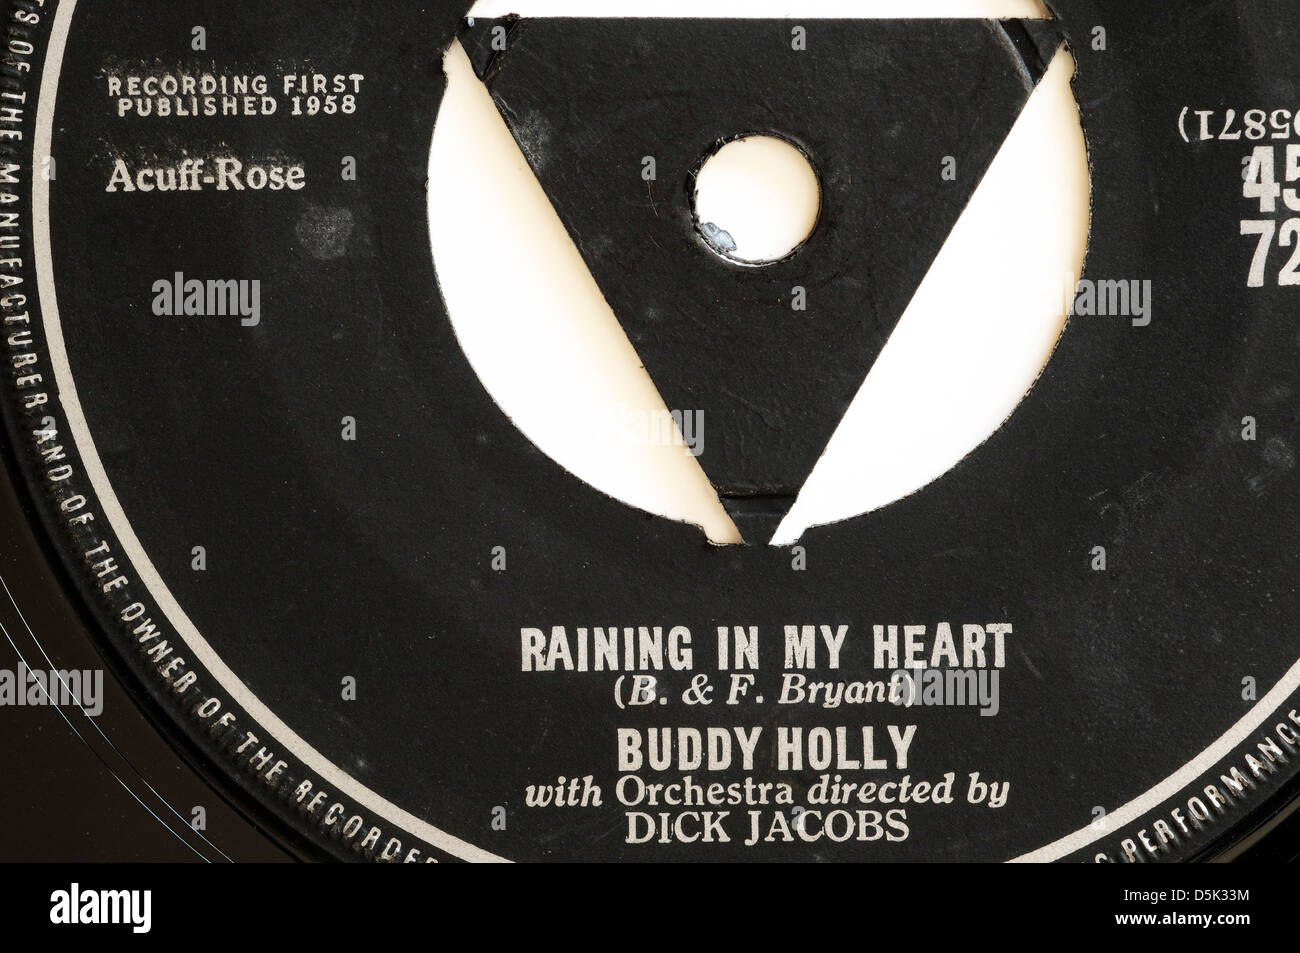 Buddy Holly Raining in my Heart 7' single record label - Stock Image